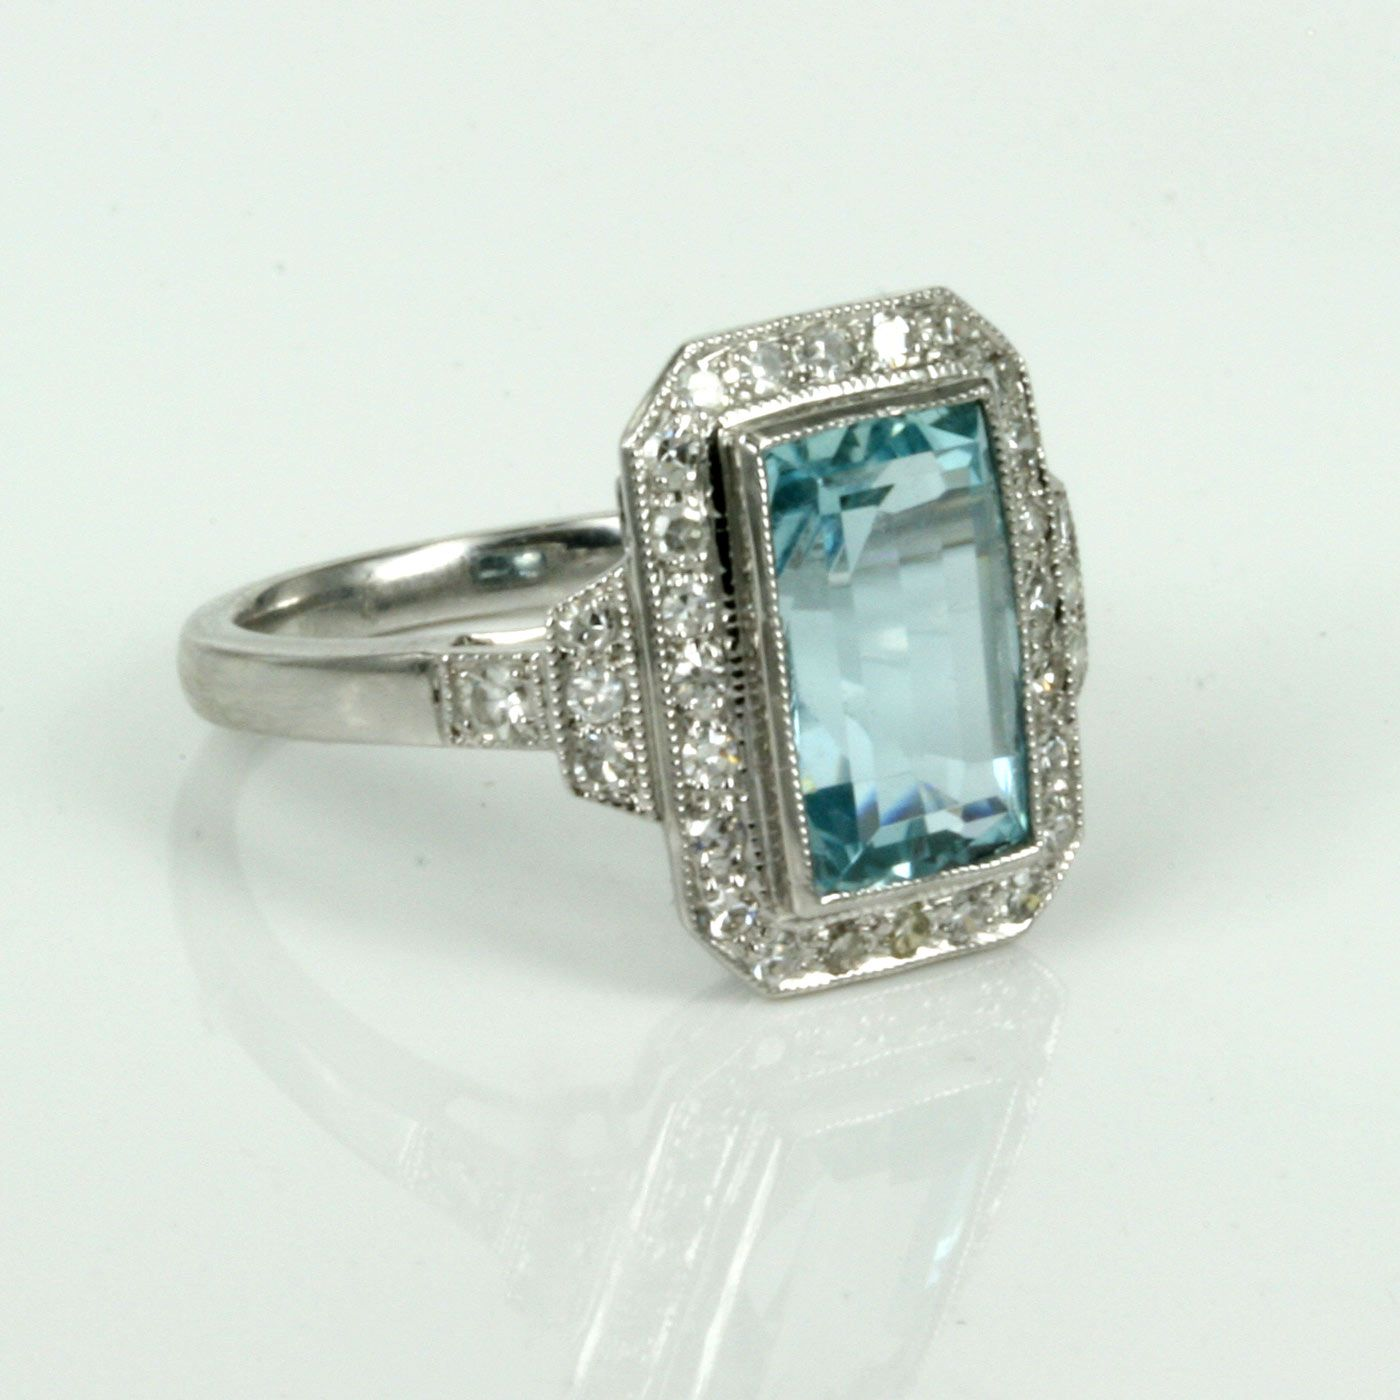 Antique Aquamarine Rings Uk Pin Aquamarine And Diamond